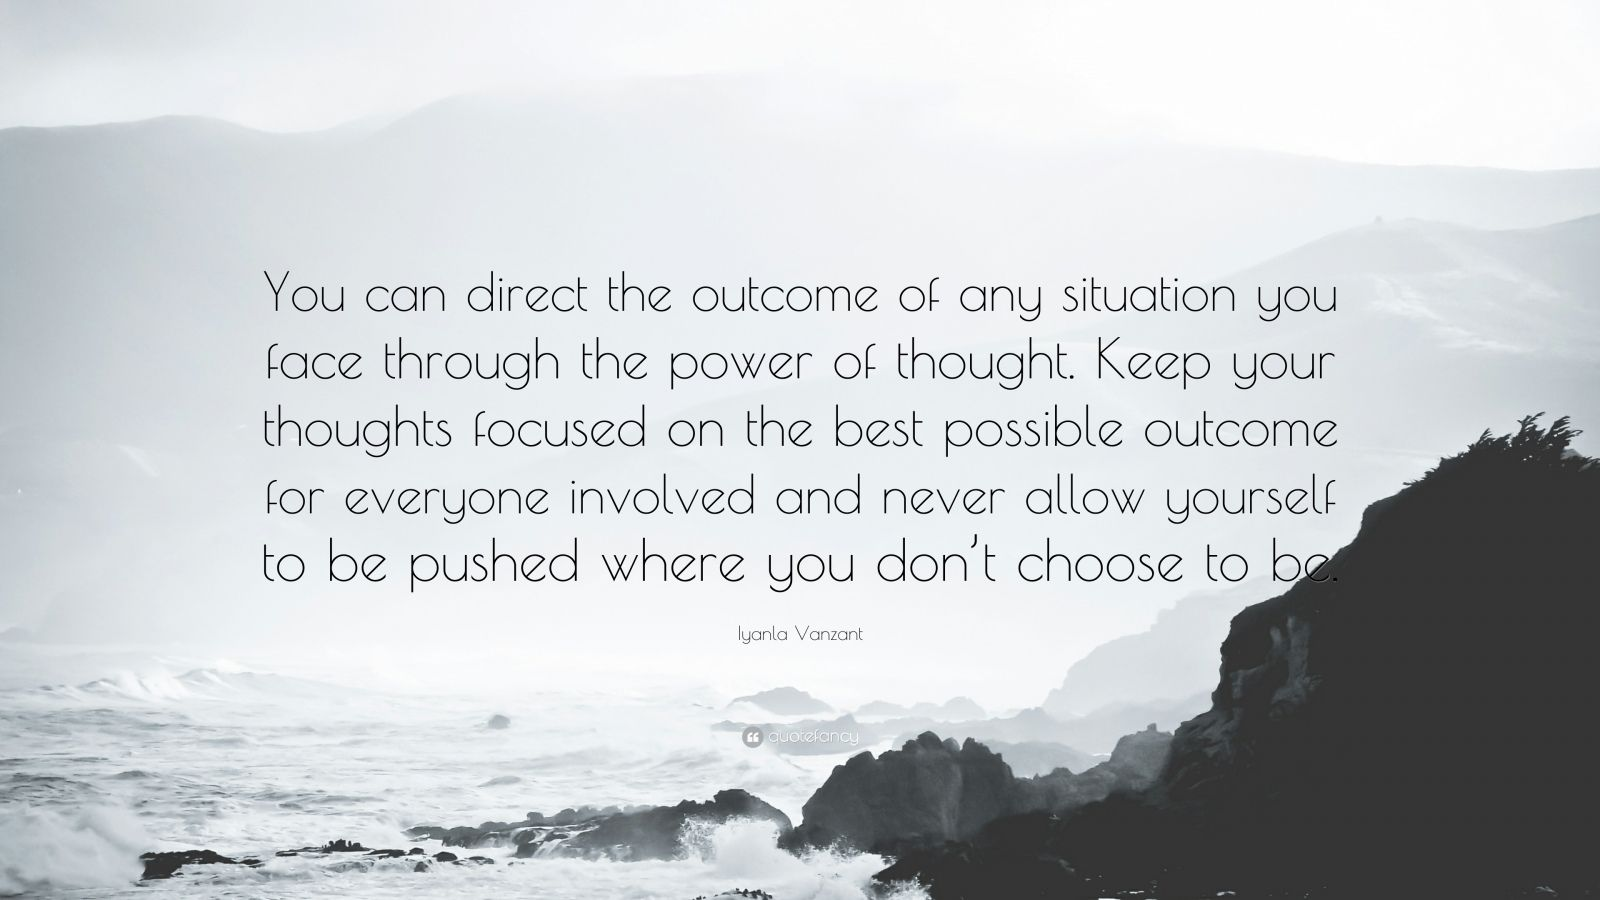 """Iyanla Vanzant Quote: """"You can direct the outcome of any situation you face through the power of thought. Keep your thoughts focused on the best possible outcome for everyone involved and never allow yourself to be pushed where you don't choose to be."""""""